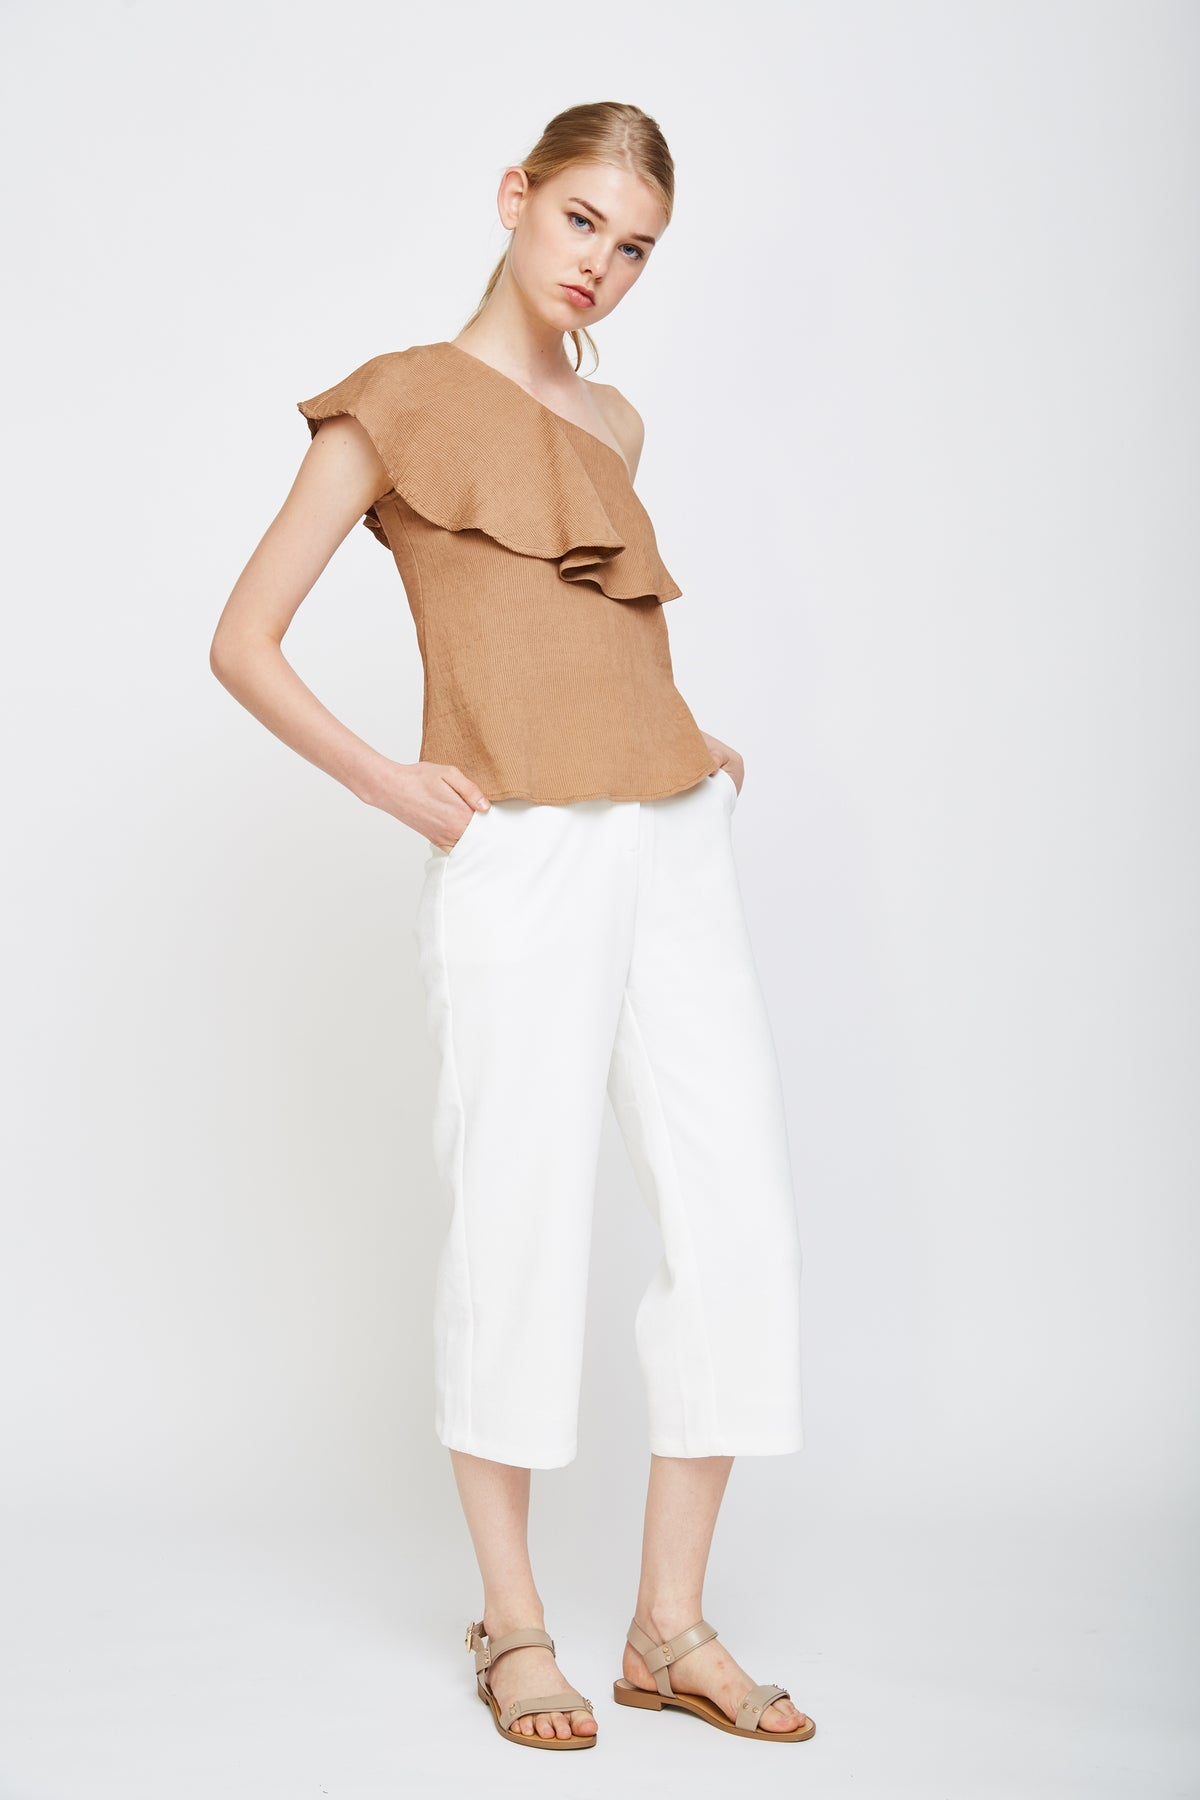 Ruffle Toga Top In Camel